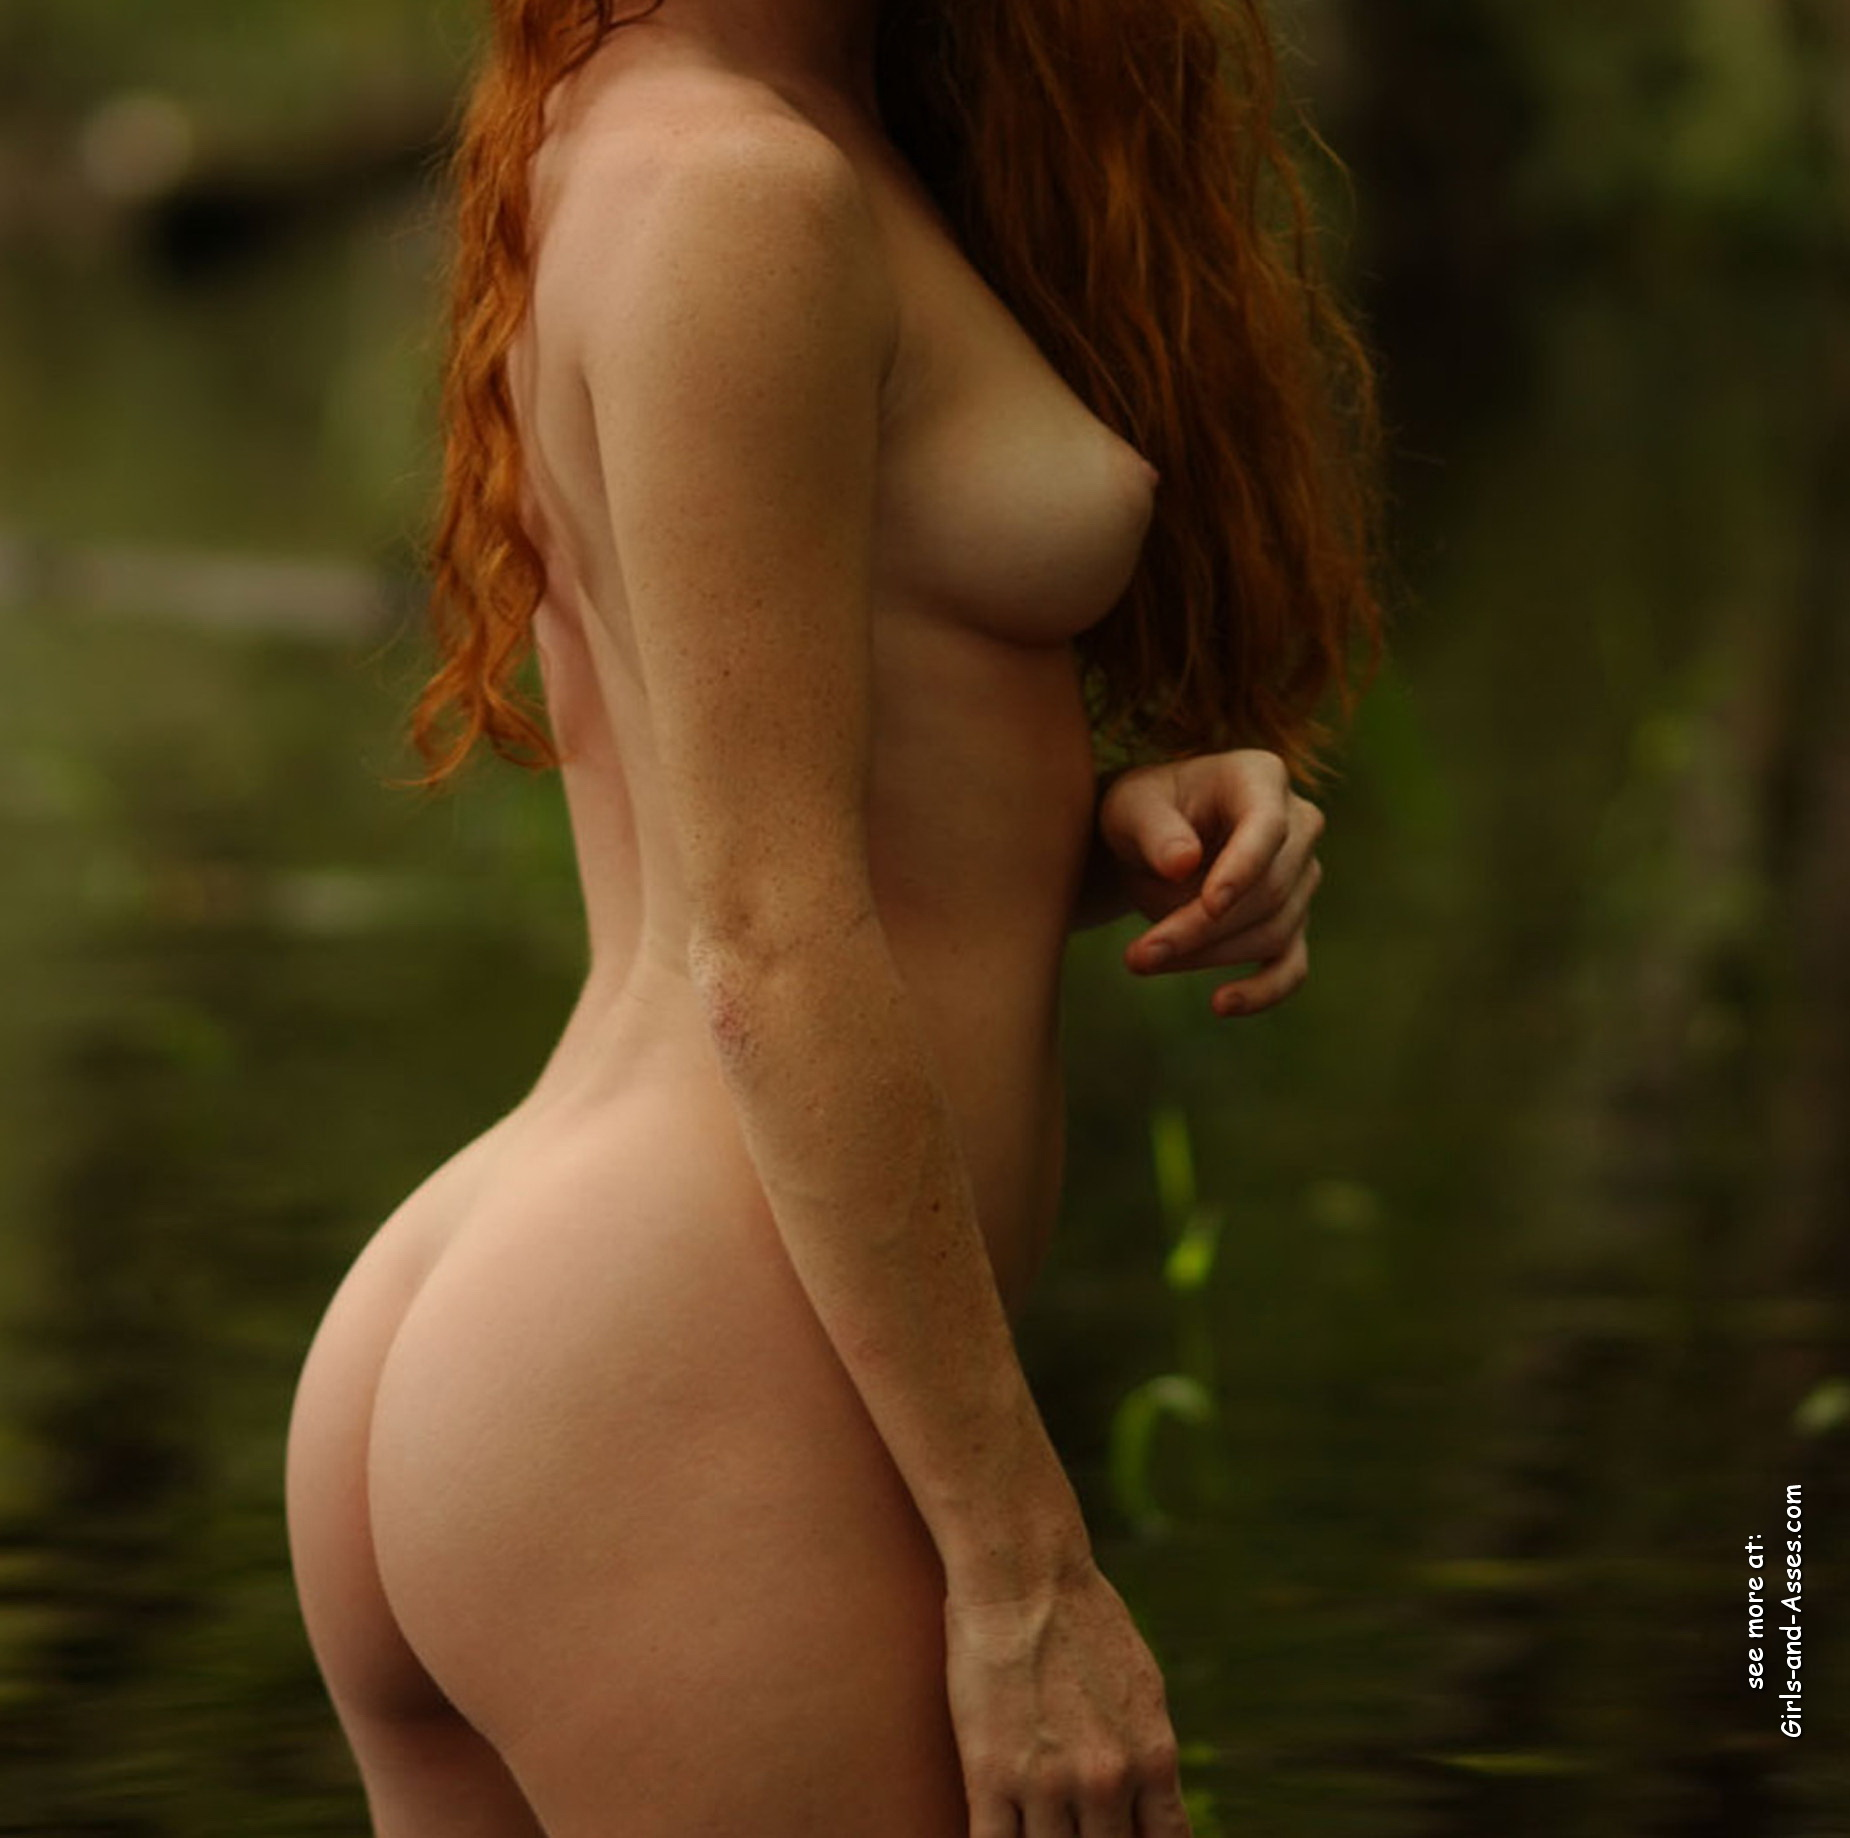 naked girl with cute butt on the river photo 06454